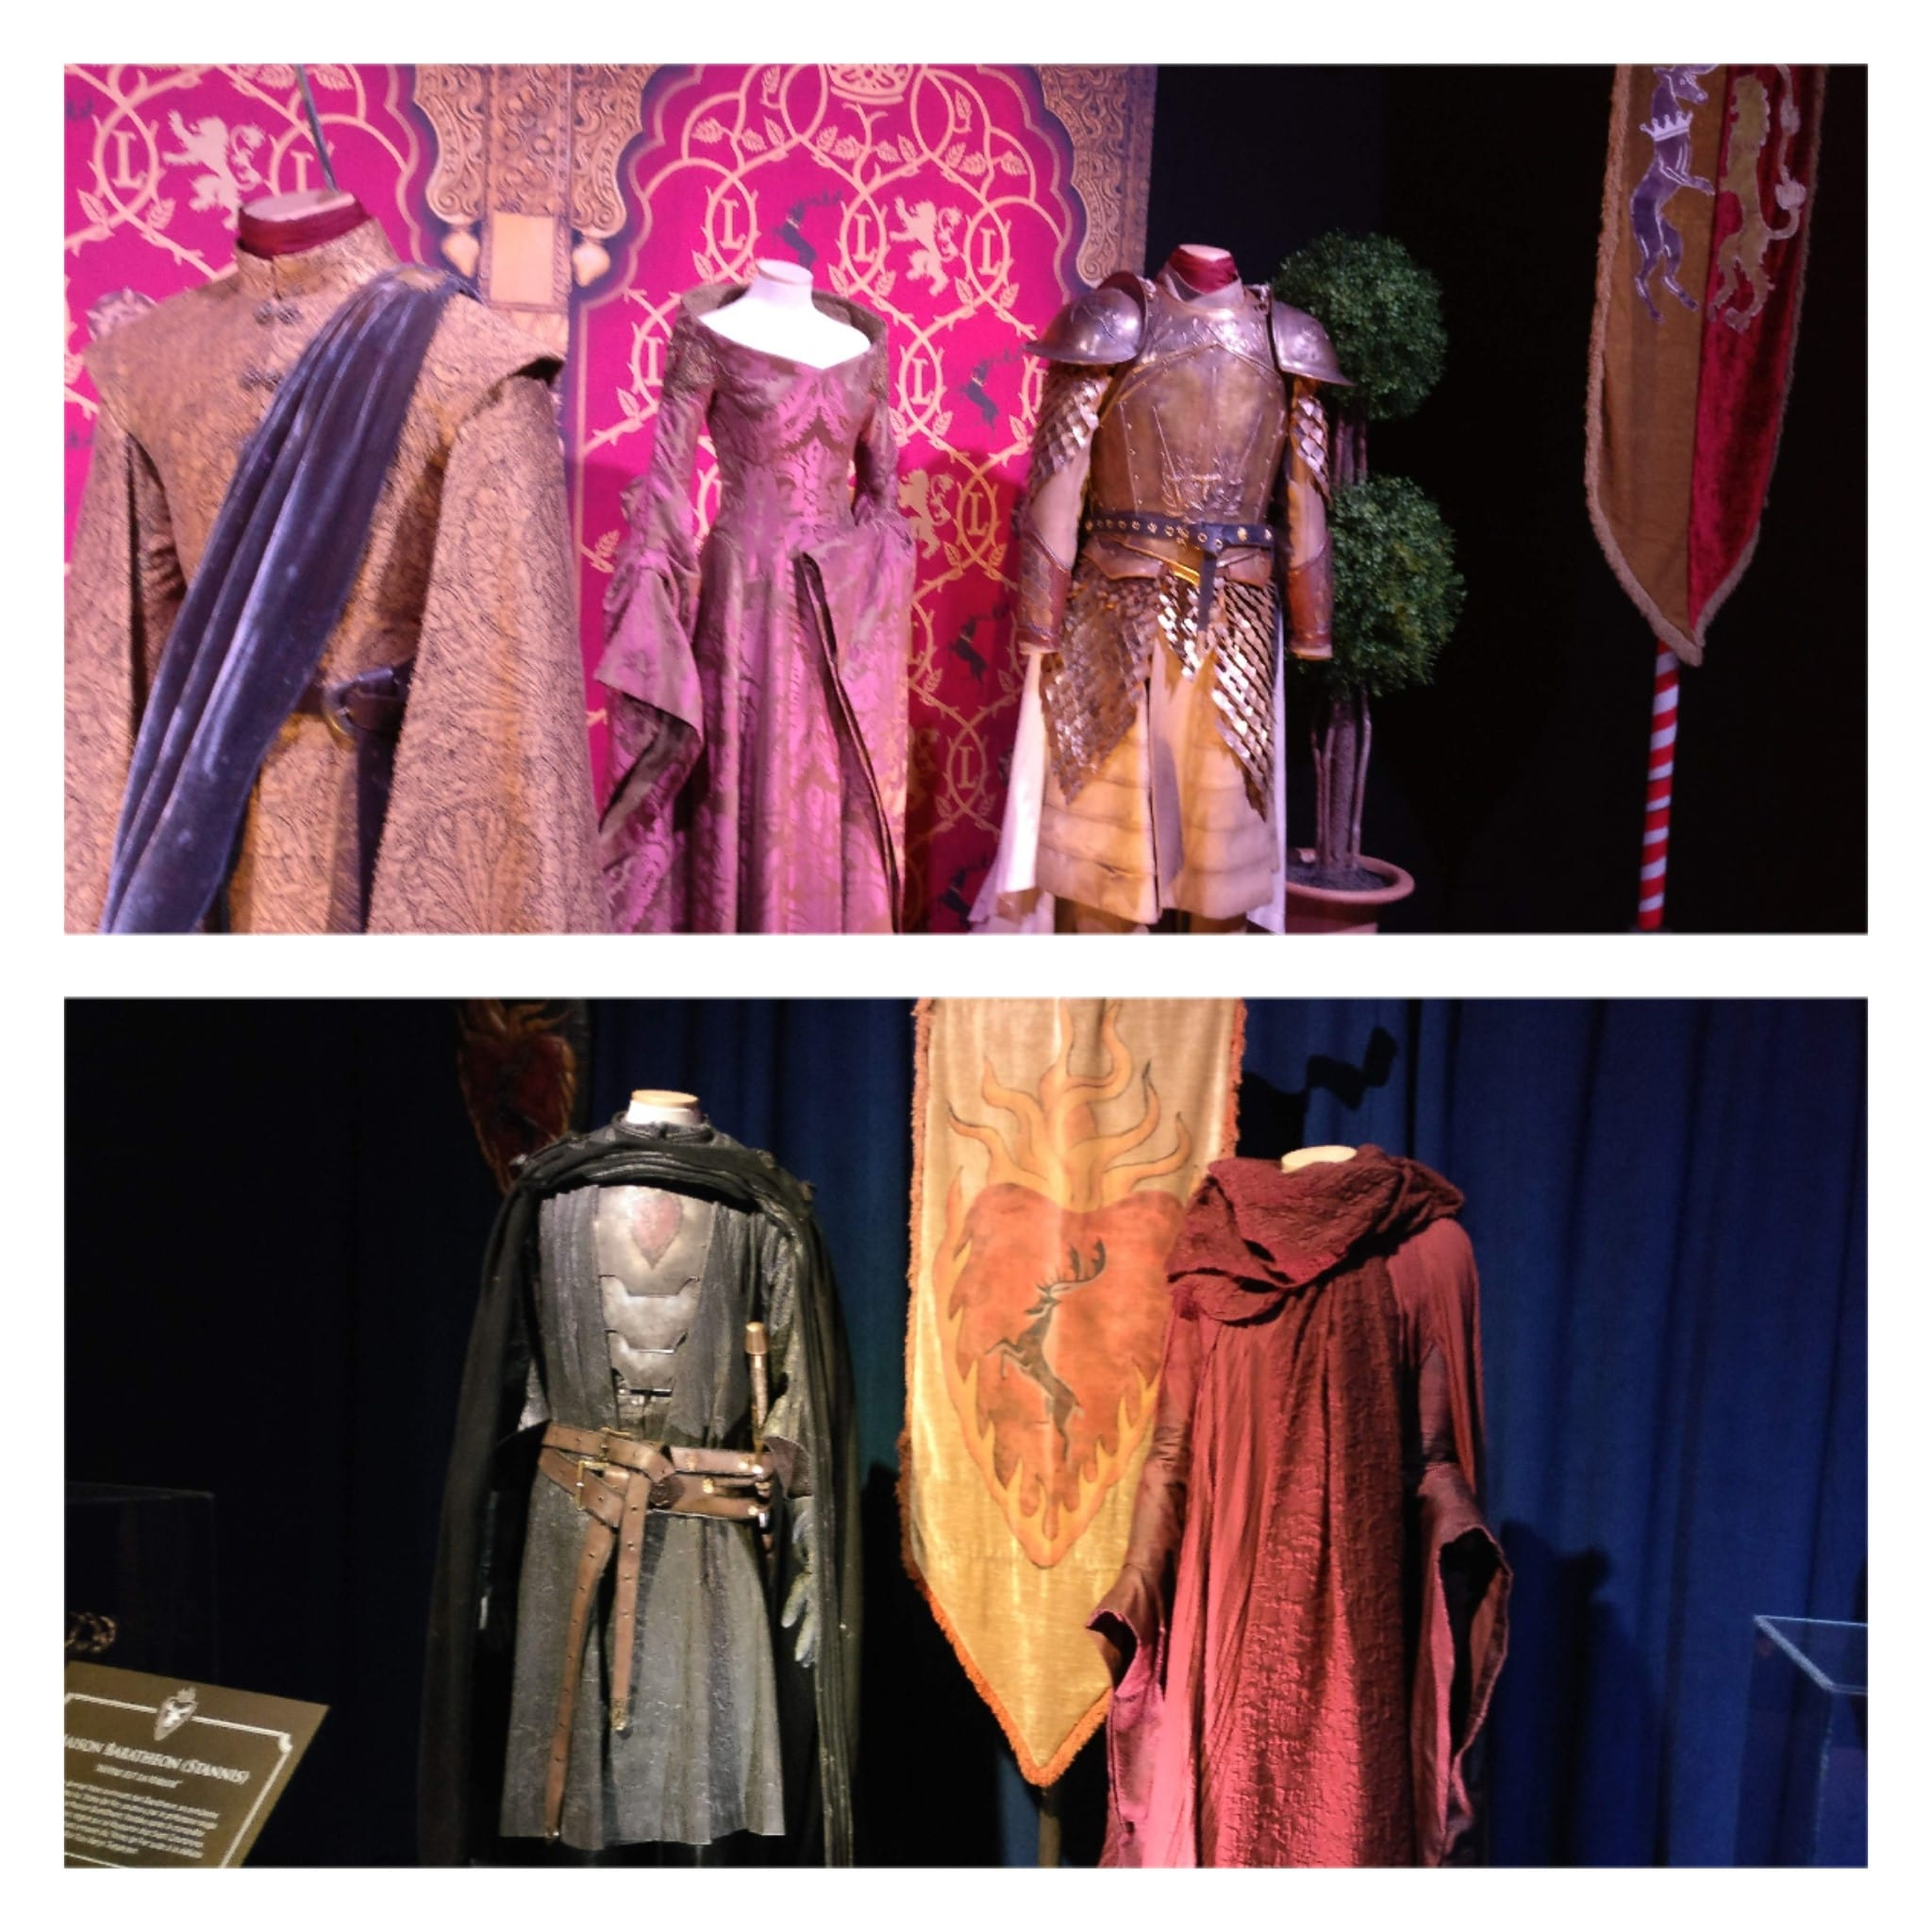 Game of Thrones Exhibition Tour